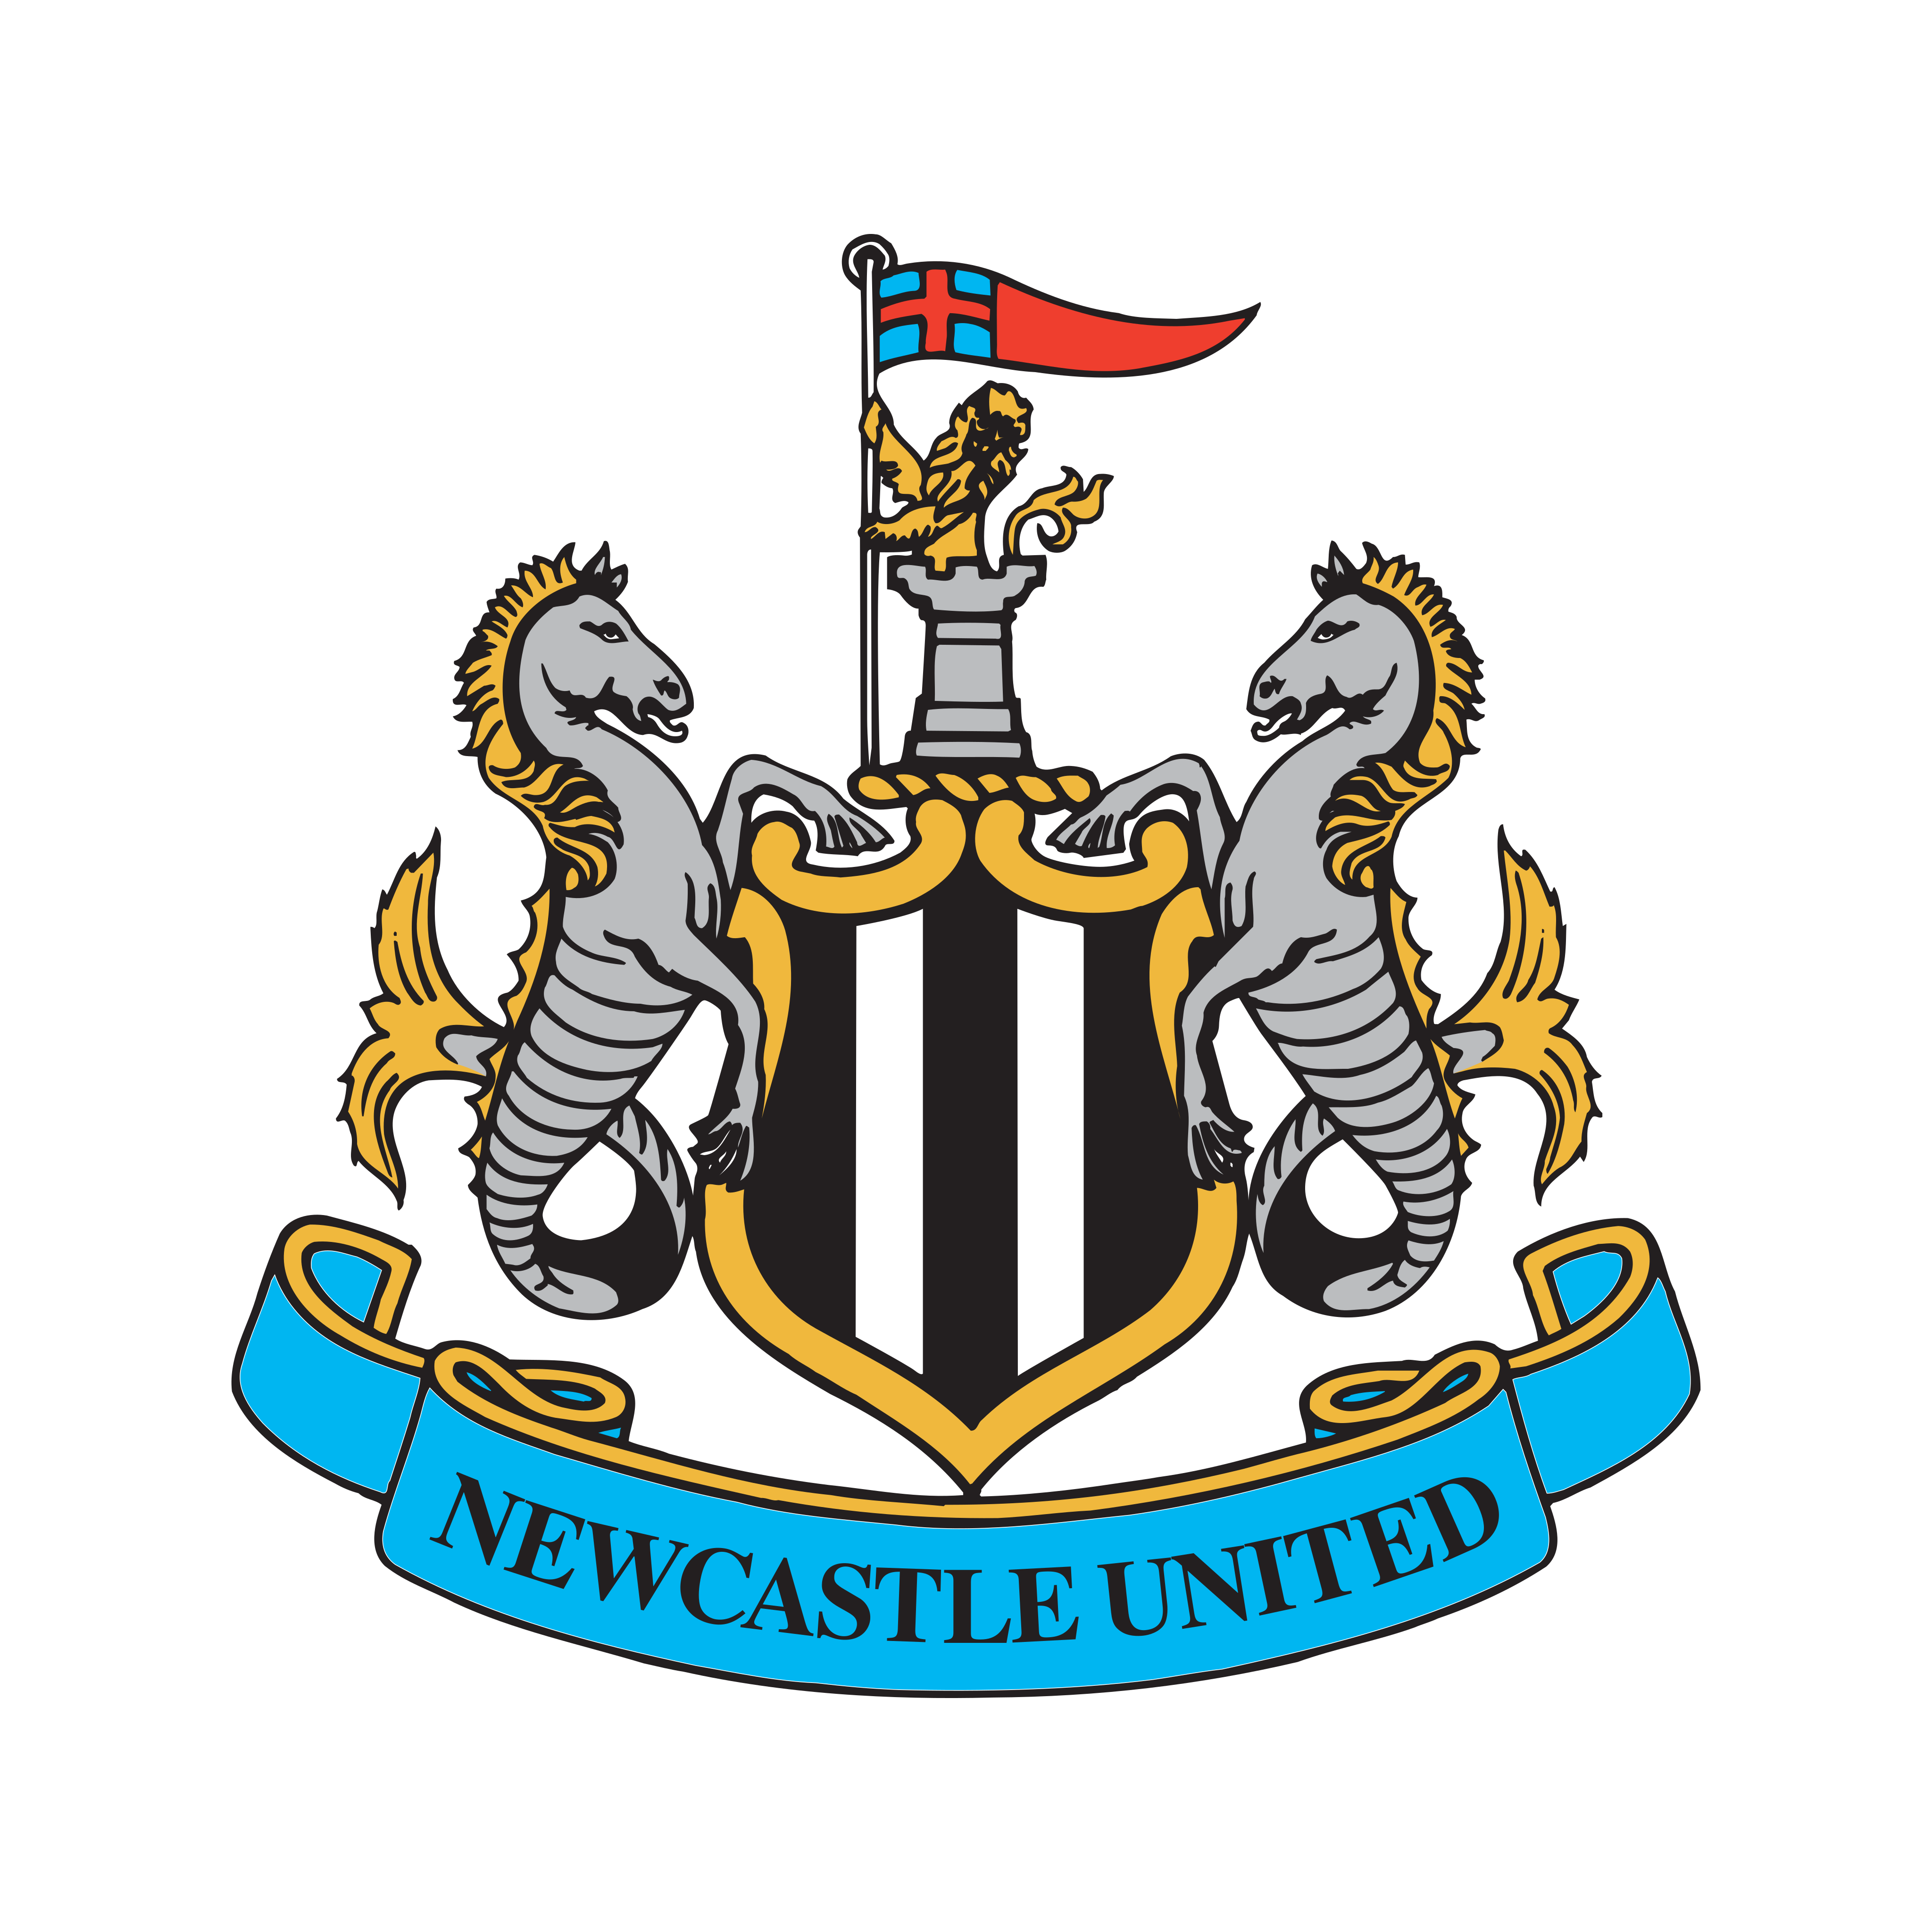 newcastle united logo 0 - Newcastle United FC Logo